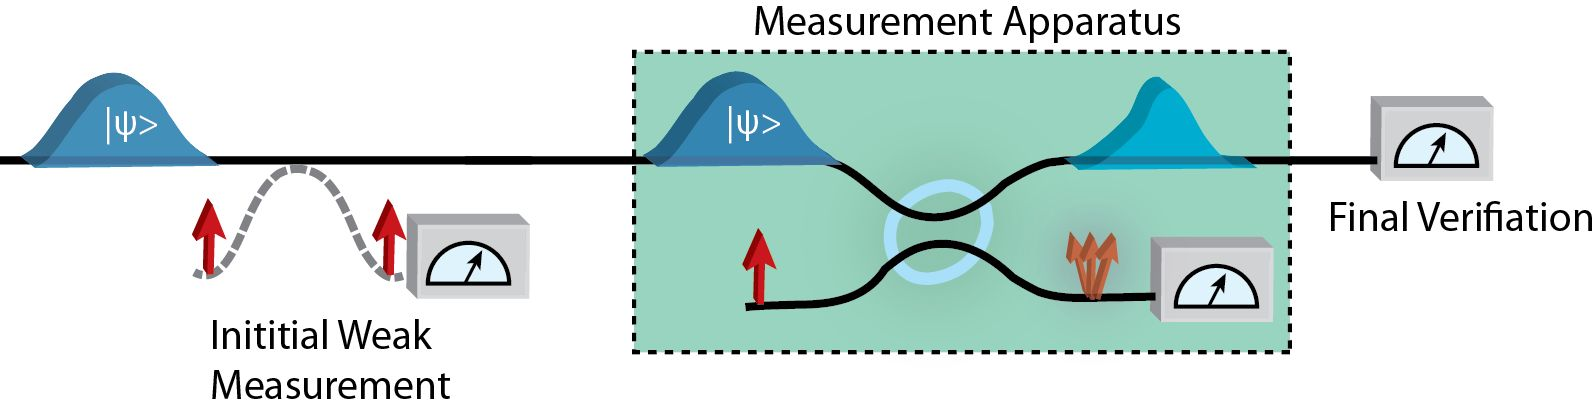 cast doubt on renowned uncertainty principle